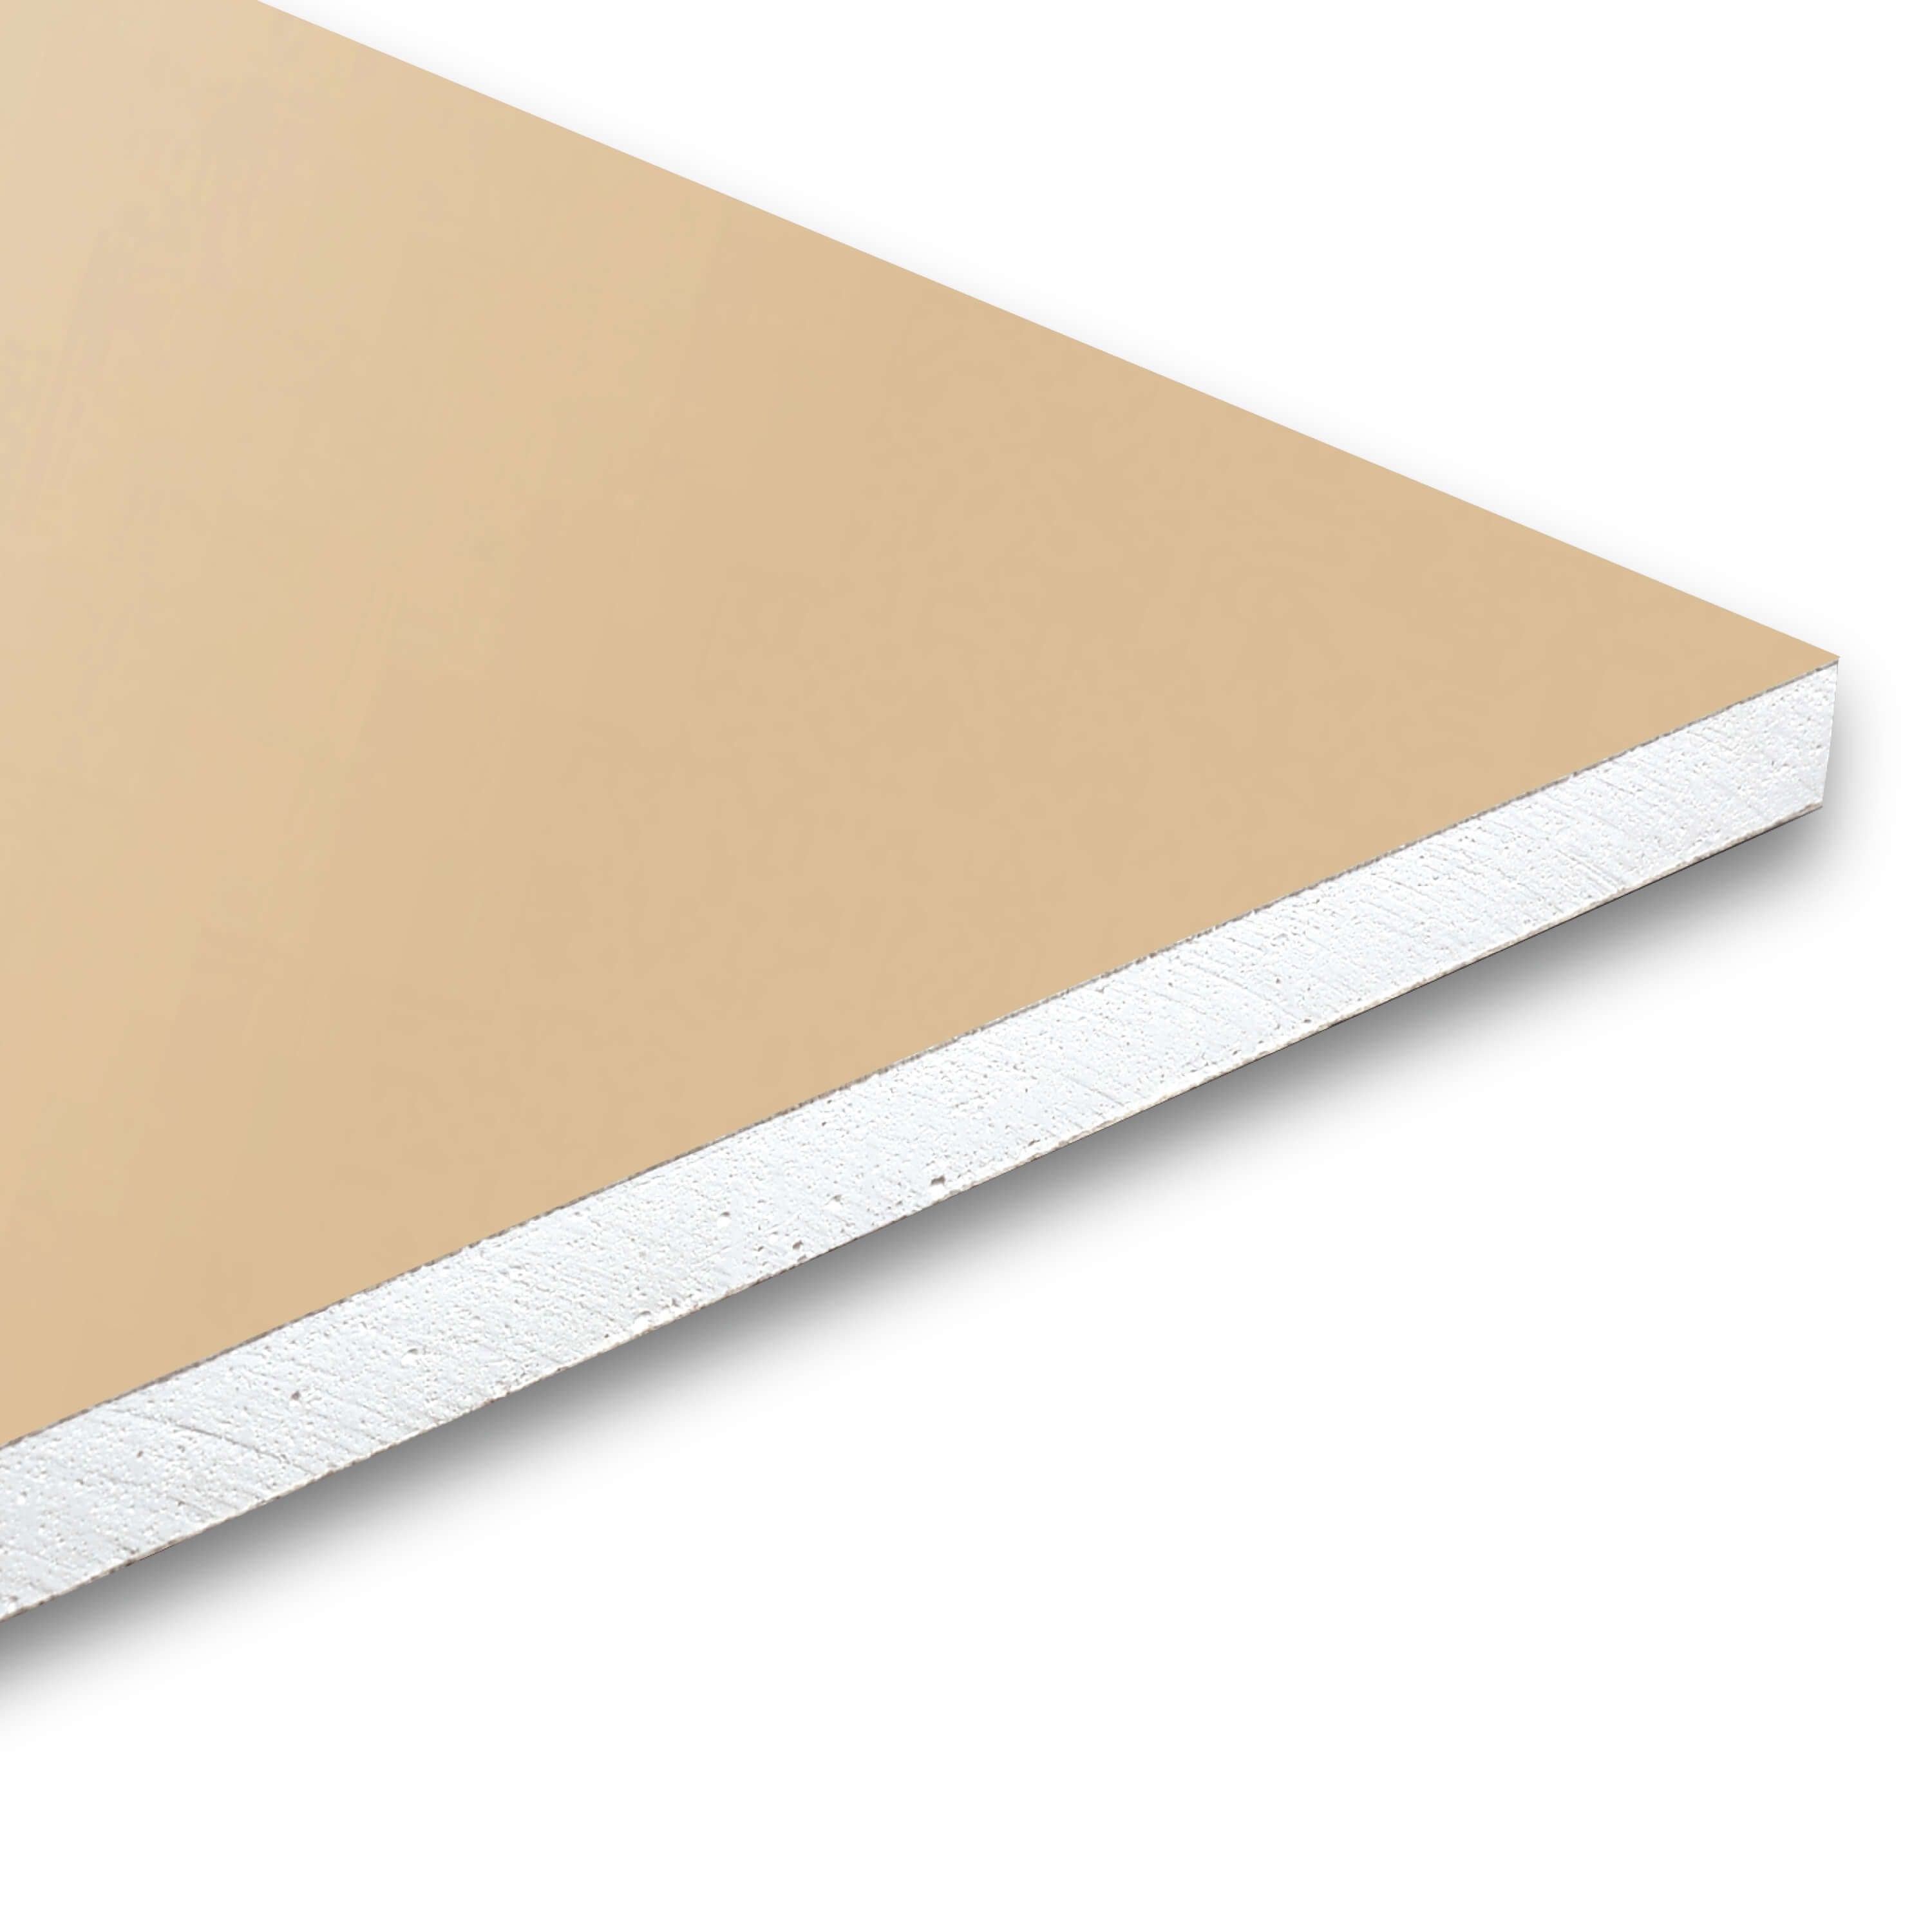 WeatherBloc Gypsum Board | for exterior balcony ceilings ...